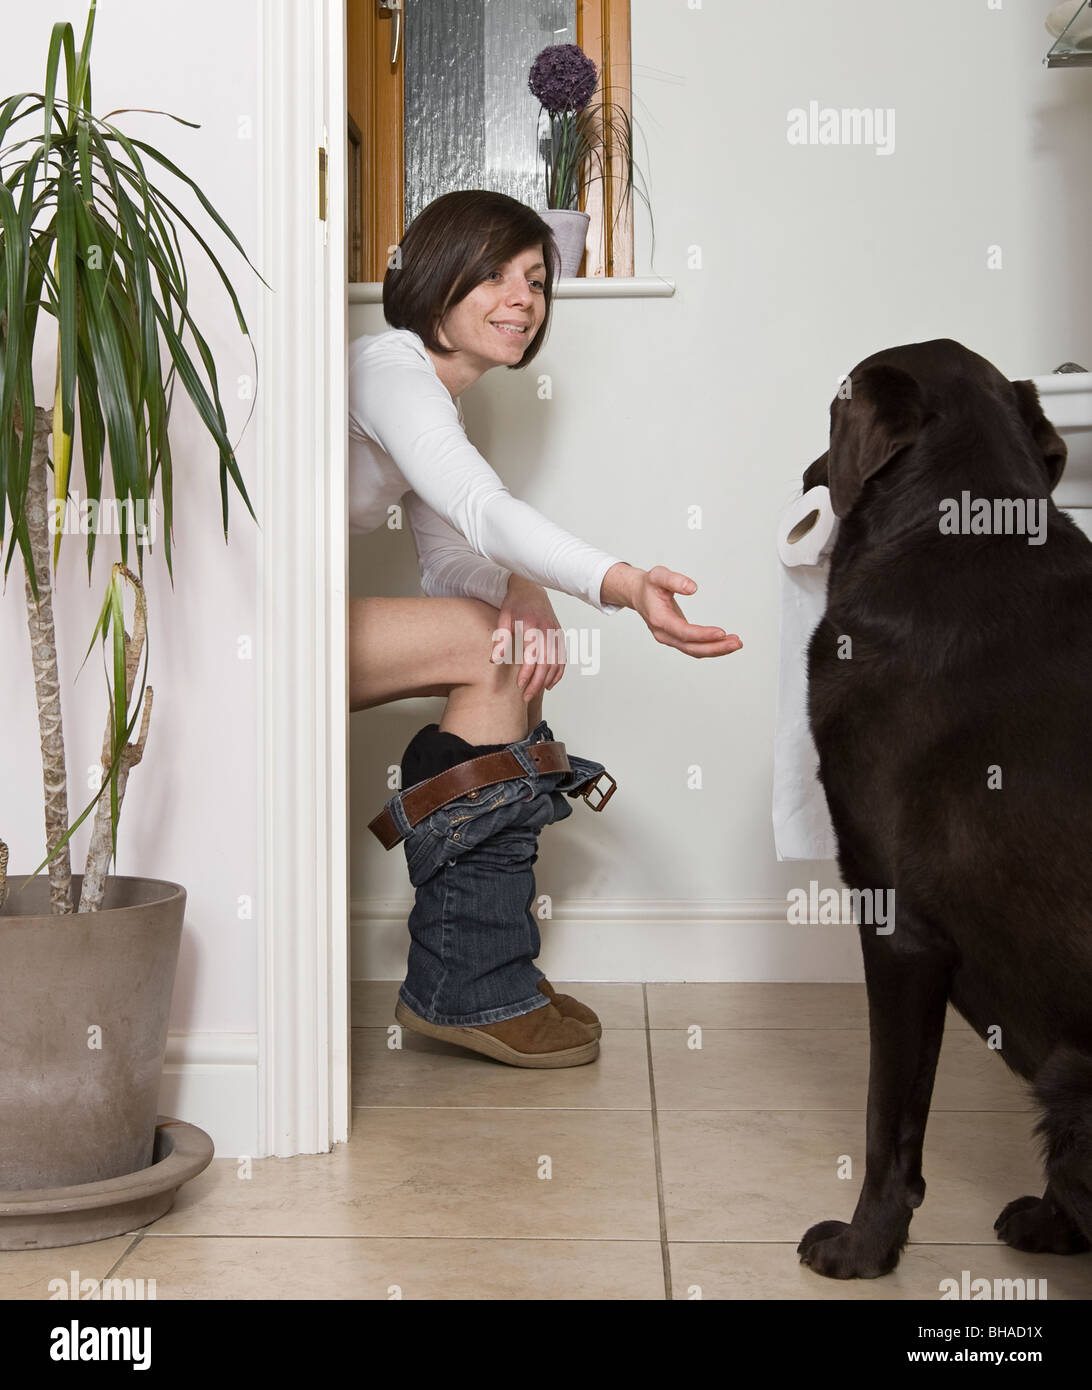 Shot of a 30s Woman in the Bathroom and Dog Bringing the Toilet Roll - Stock Image